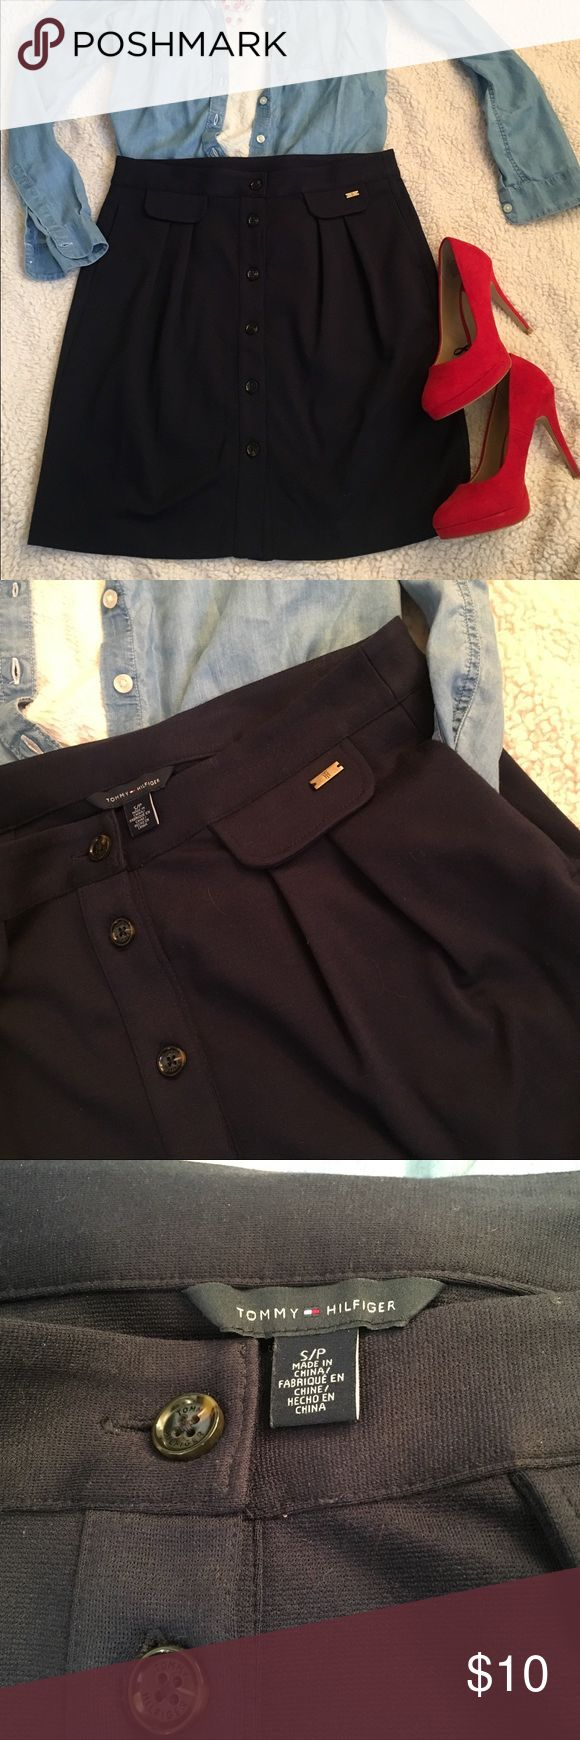 Tommy Hilfiger Navy Blue Knit Button Front Skirt Tommy Hilfiger Navy Blue Knit Button Front Skirt w/pockets Sz Small Tommy Hilfiger Skirts